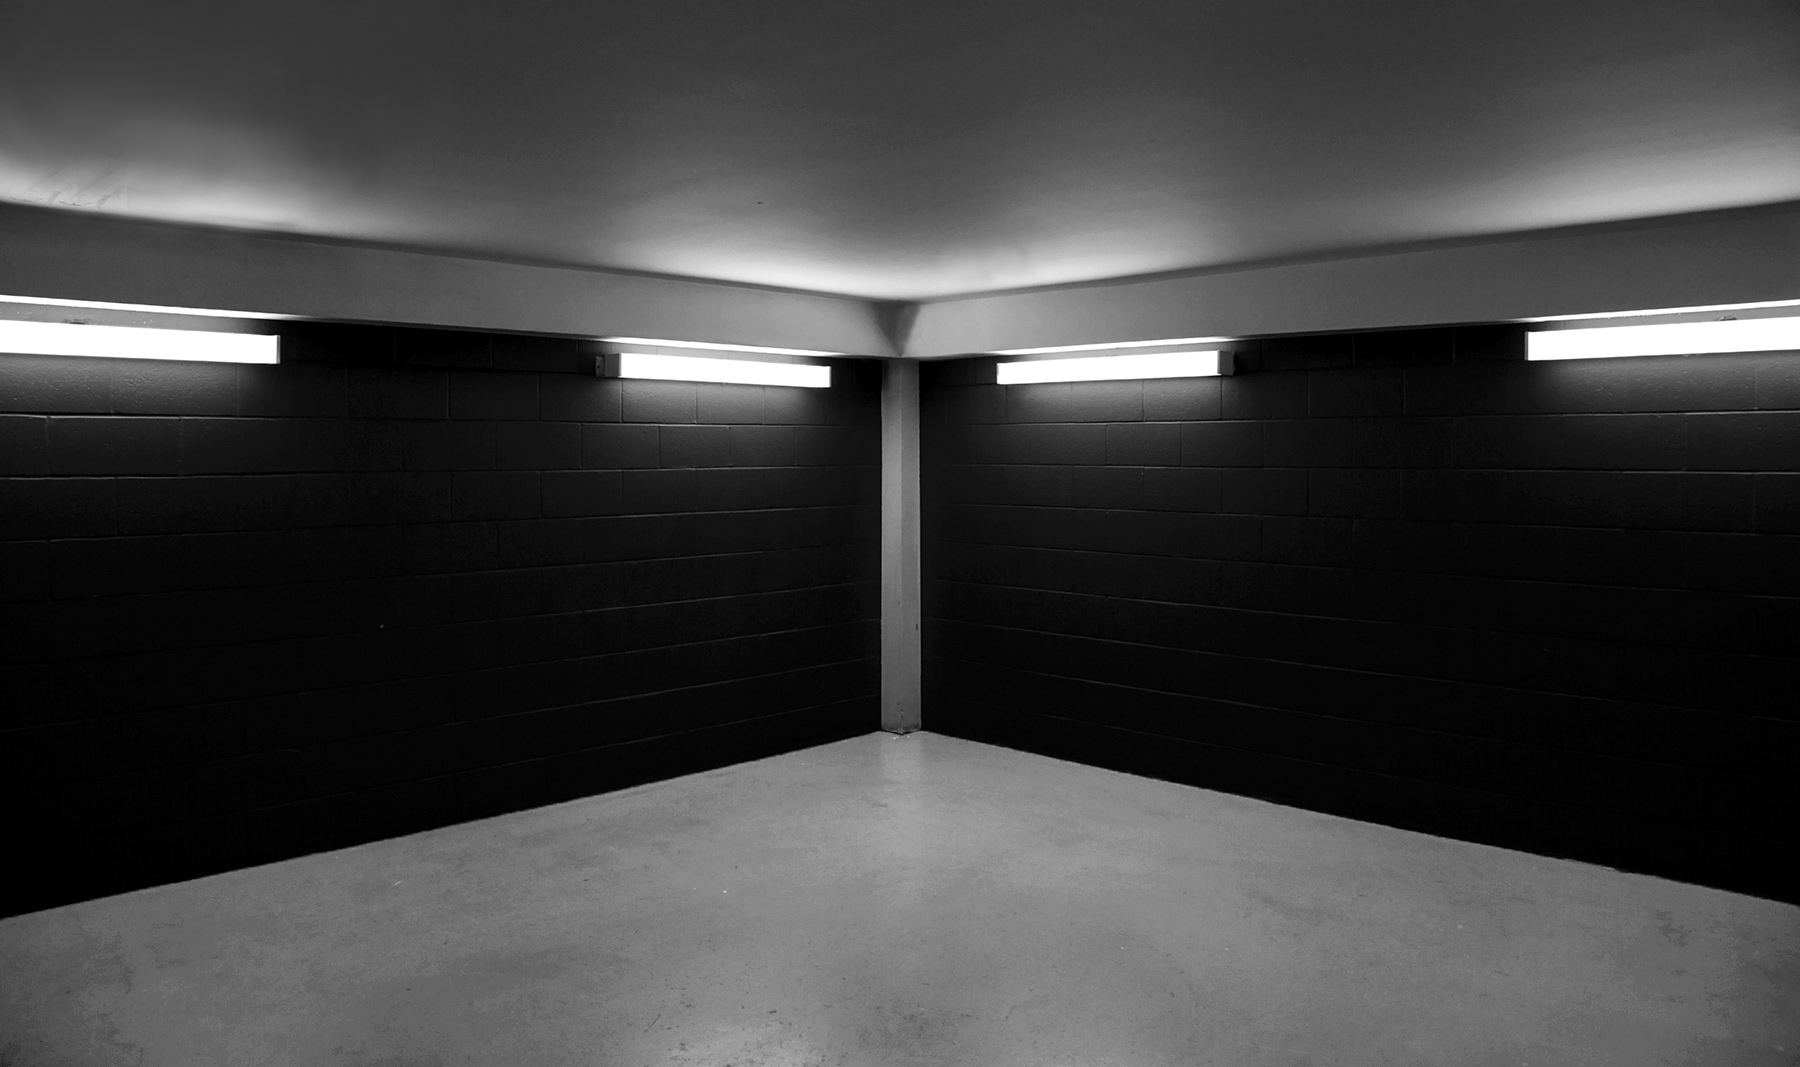 20150829. Four fluorescent lights cast shadows in a corner. Mini